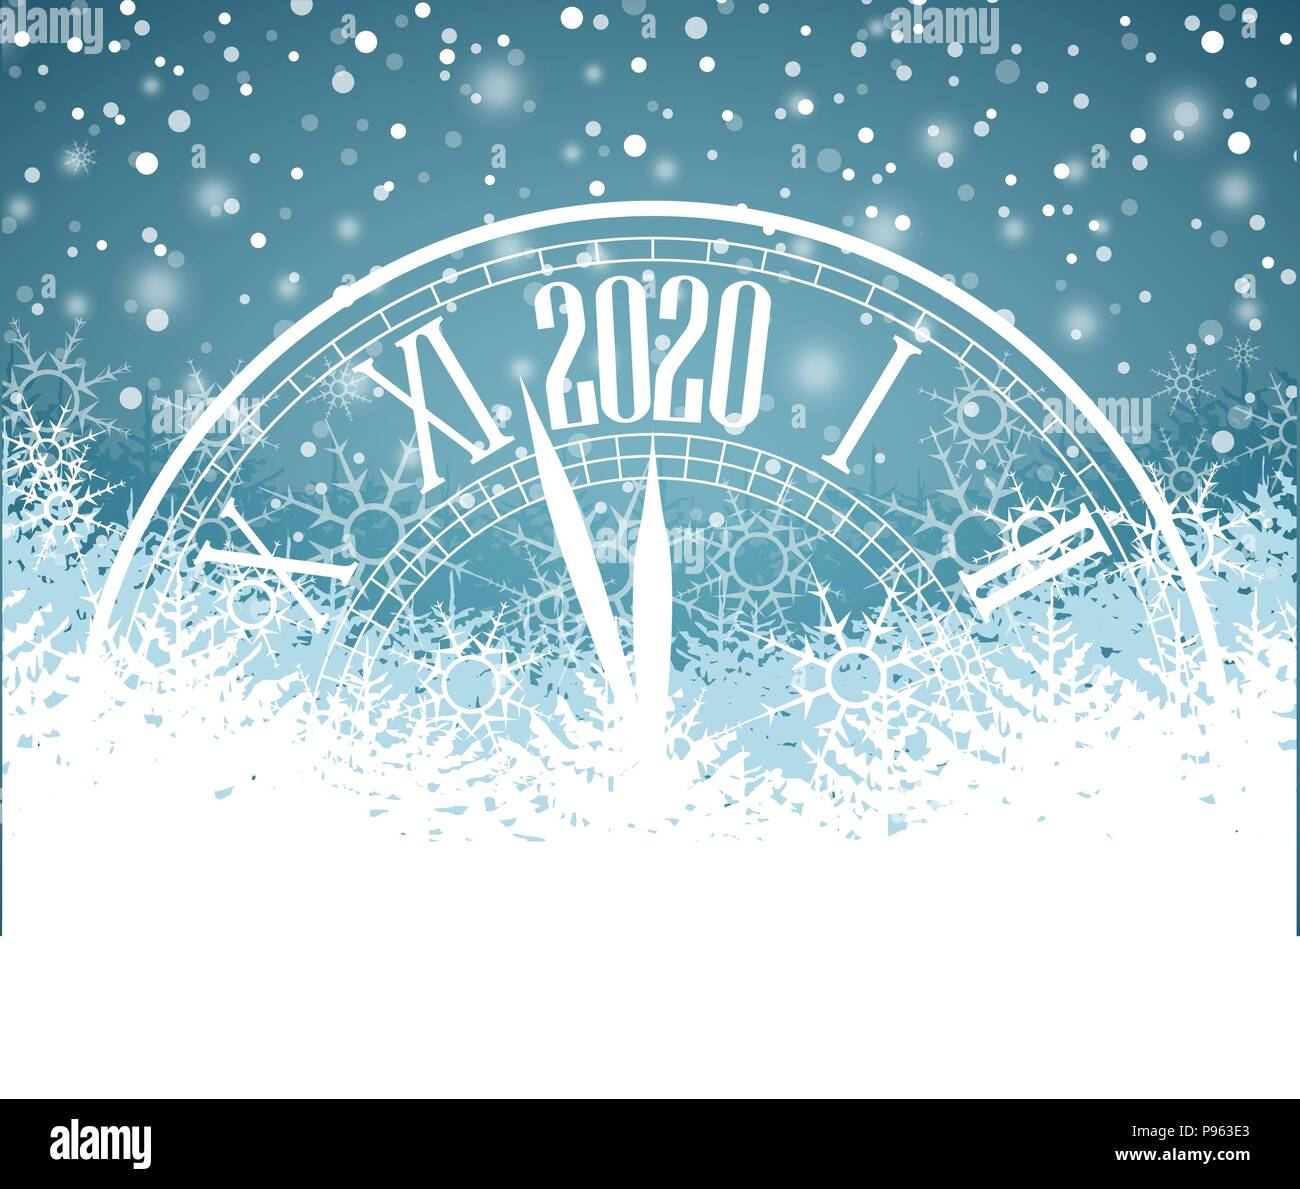 New Year 2020 Background Happy New Year 2020, vector illustration Christmas background with